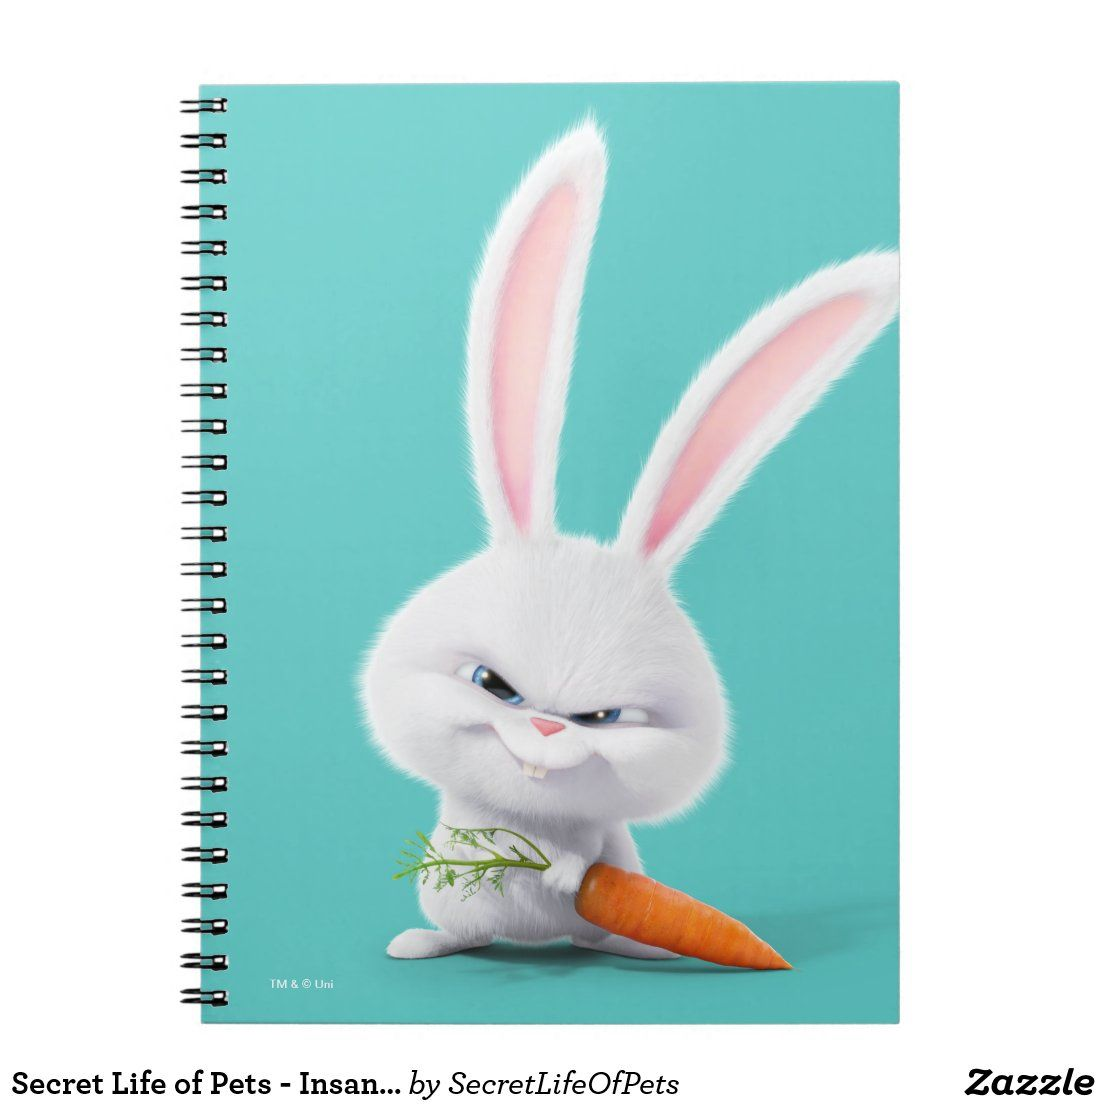 Secret Life Of Pets Insanely Cute Snowball Notebook Zazzle Com In 2020 Secret Life Of Pets Secret Life Pets Movie